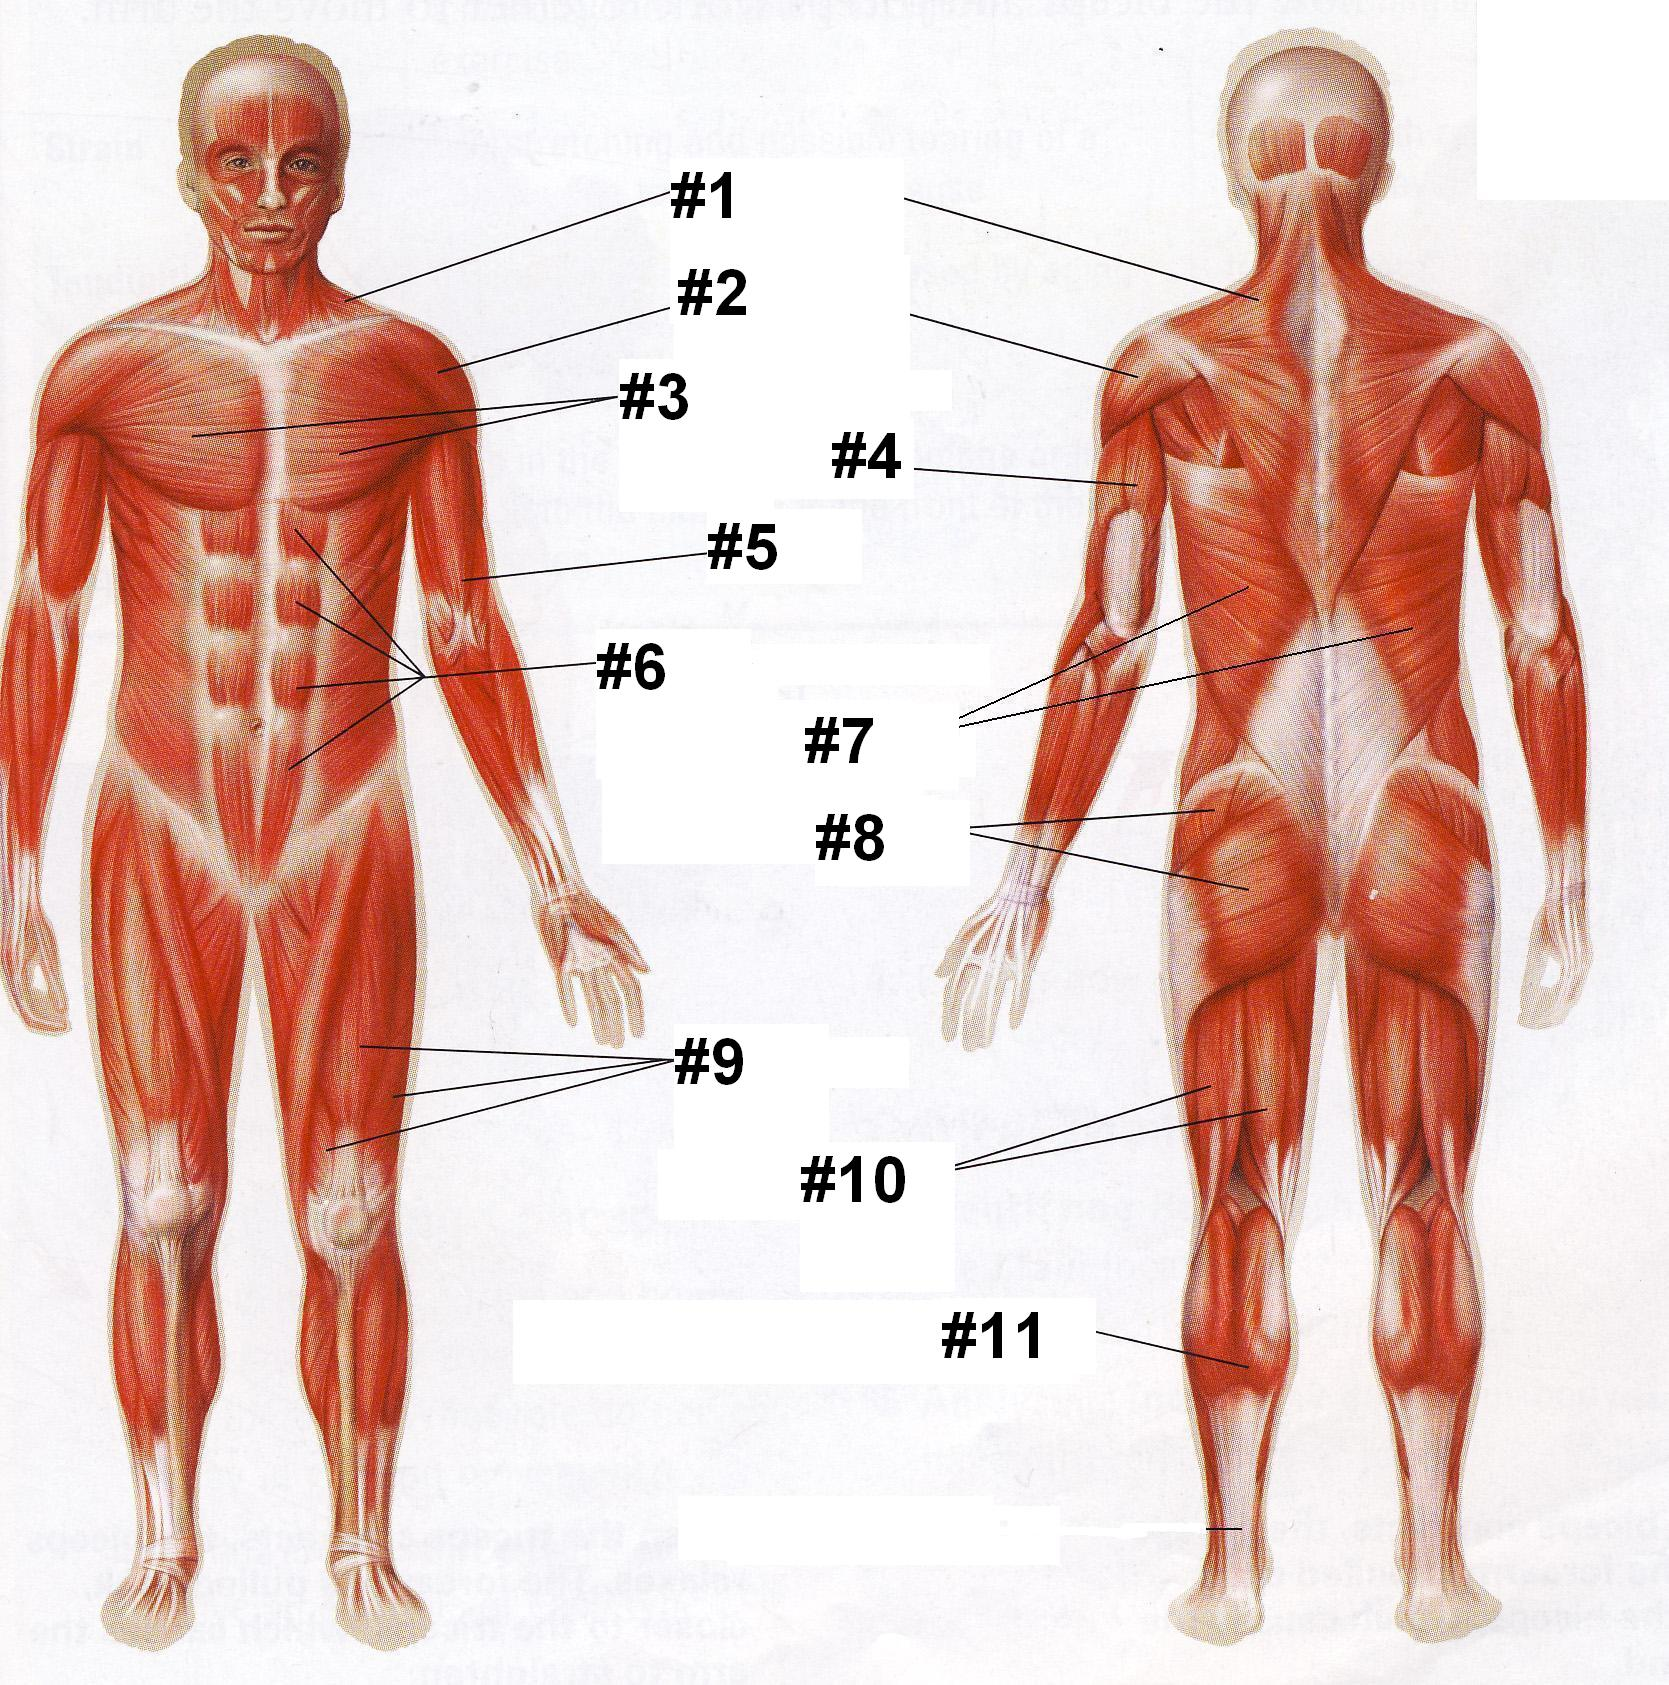 Human Muscle Anatomy Quiz Questions - ProProfs Quiz